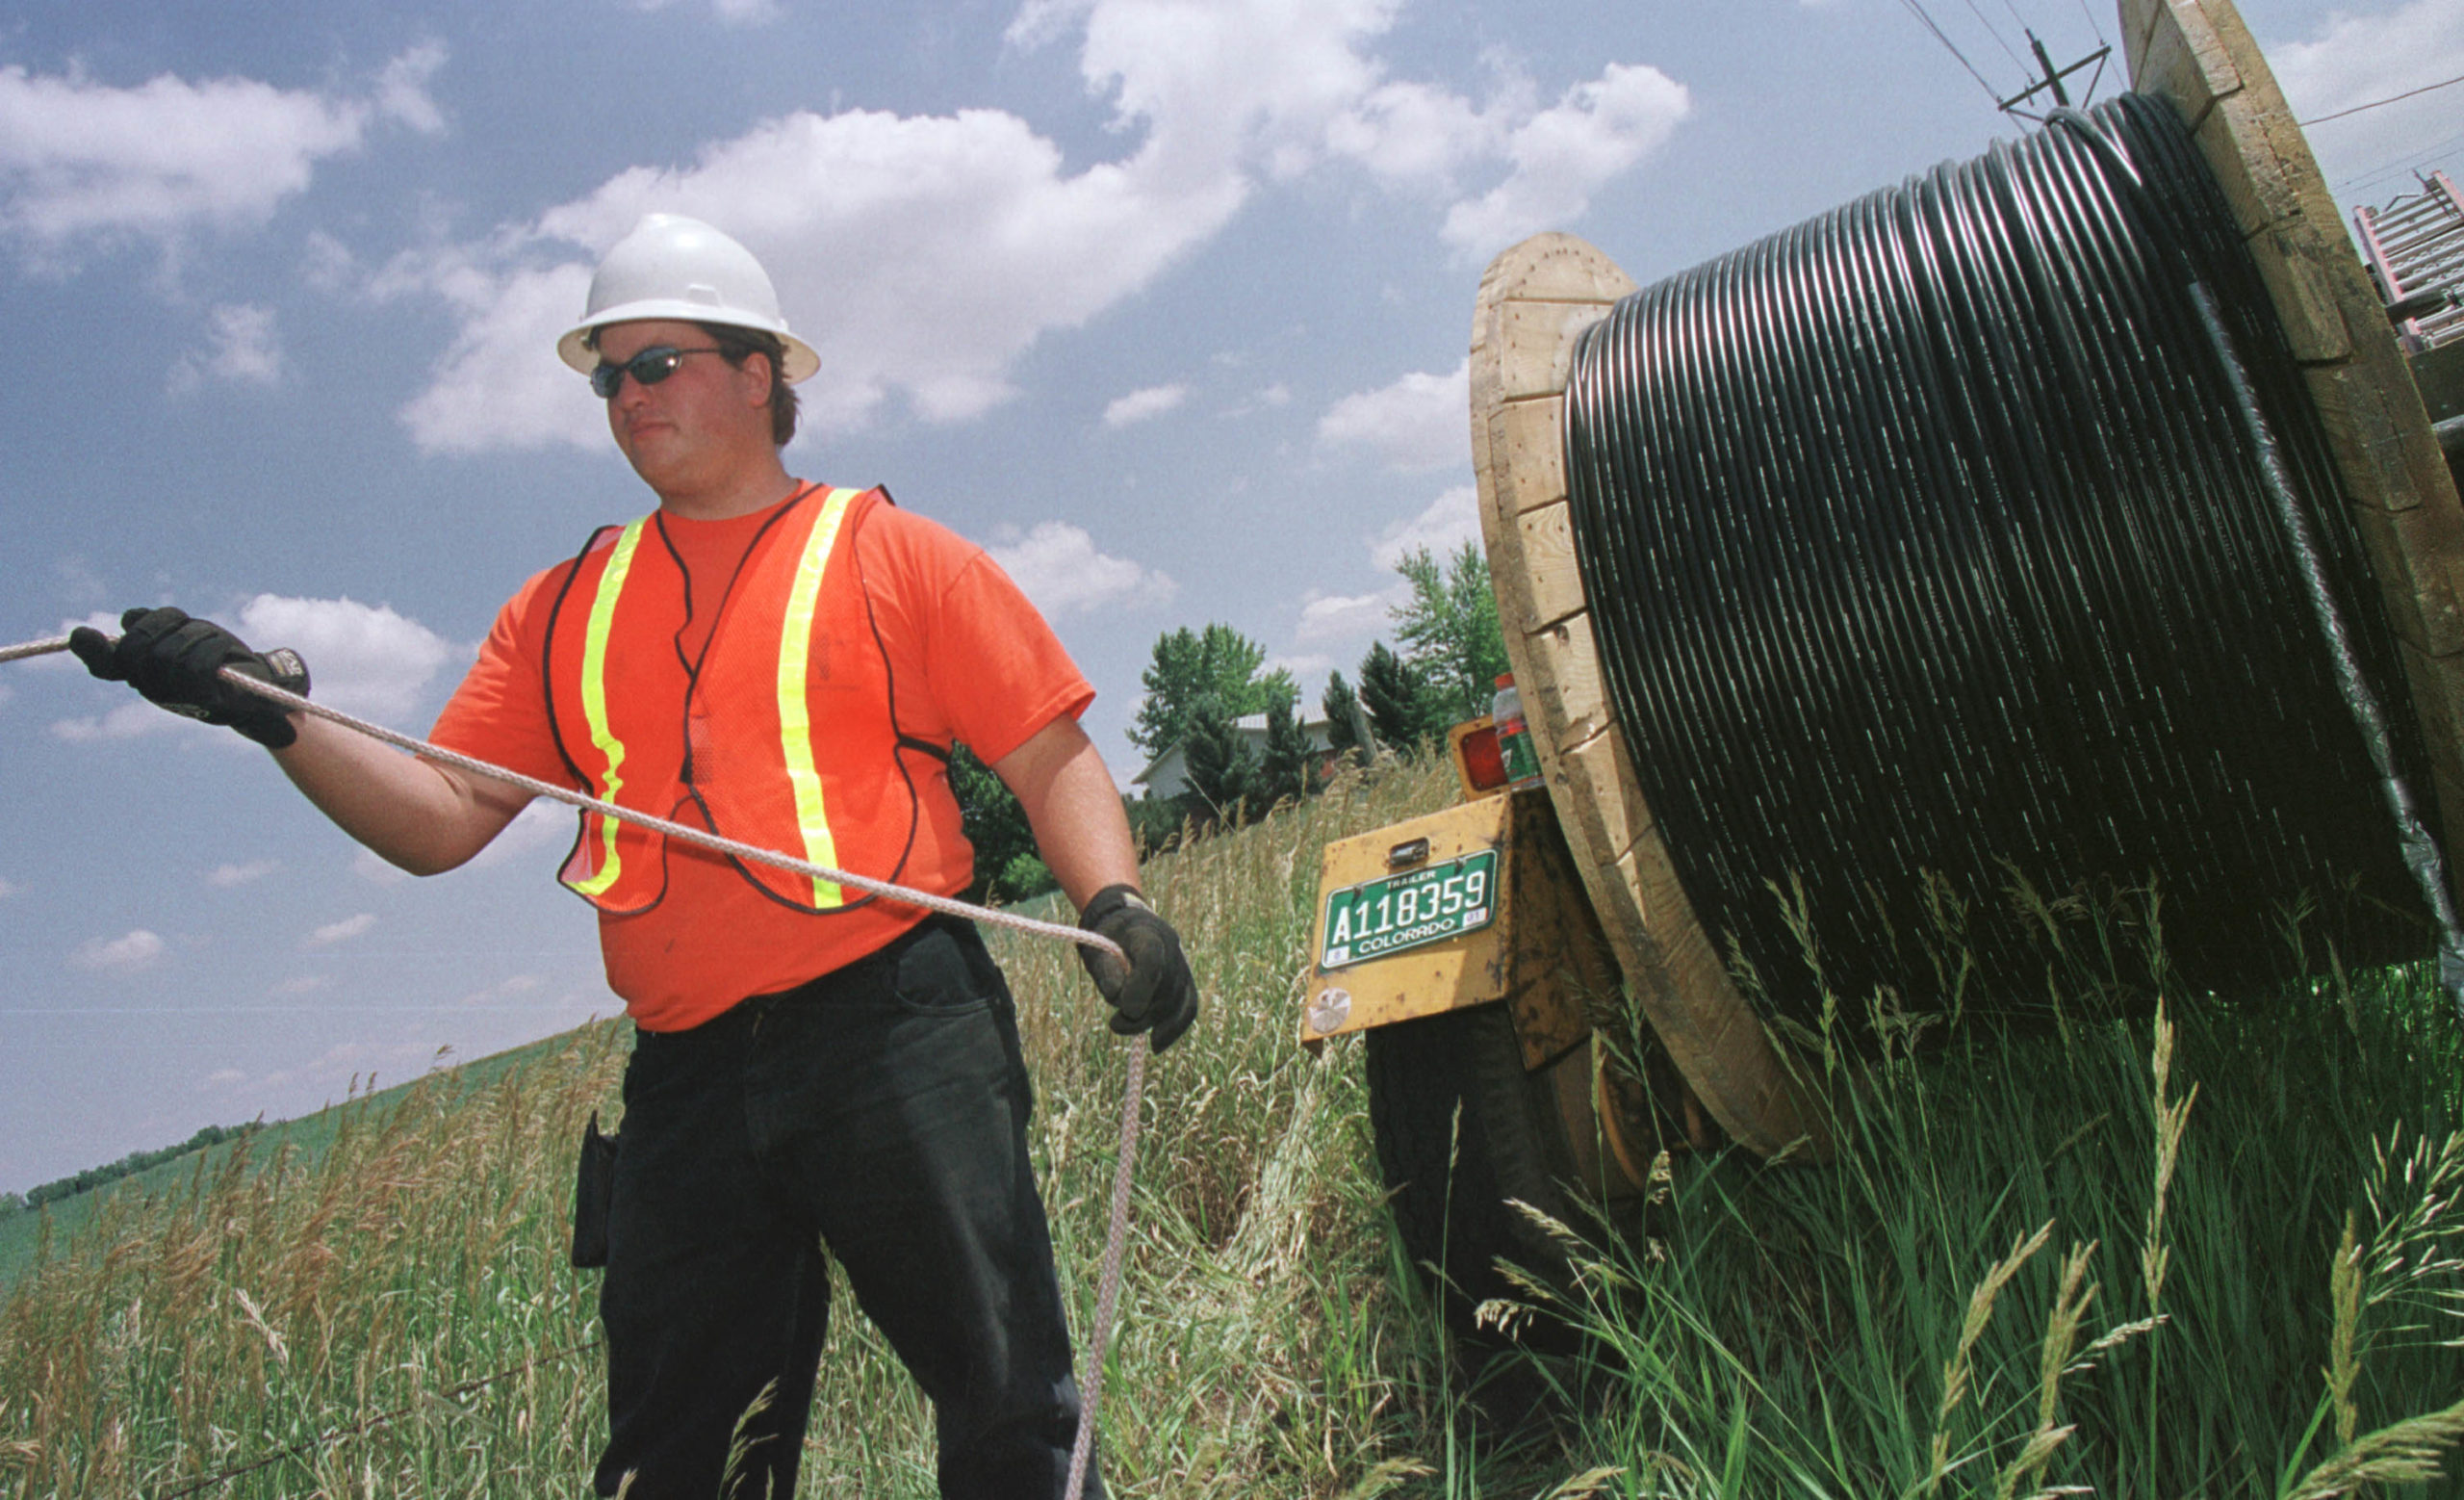 Reeltender Mo Laussie watches fiber-optic cable as he helps install the cable unto telephone poles in Louisville, CO. (Photo by Michael Smith/Getty Images)